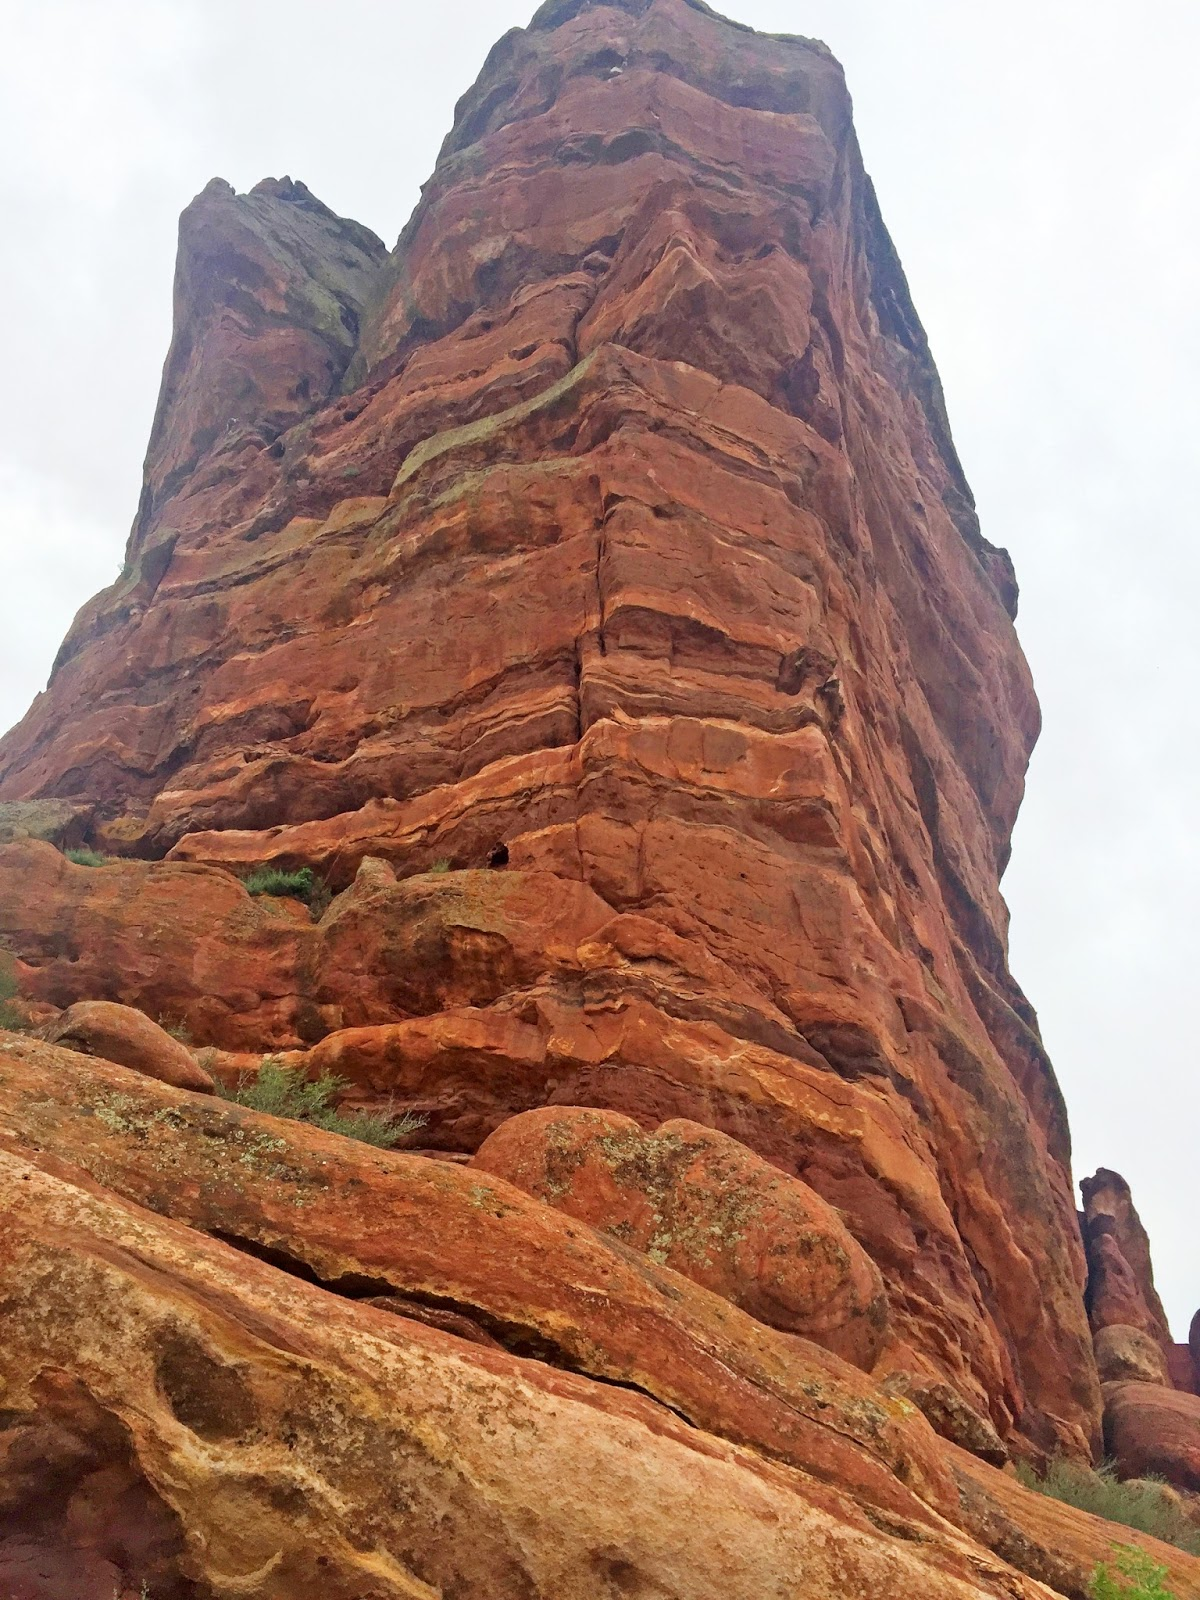 Breathtaking views at Red Rocks, Colorado. More photos on the blog!